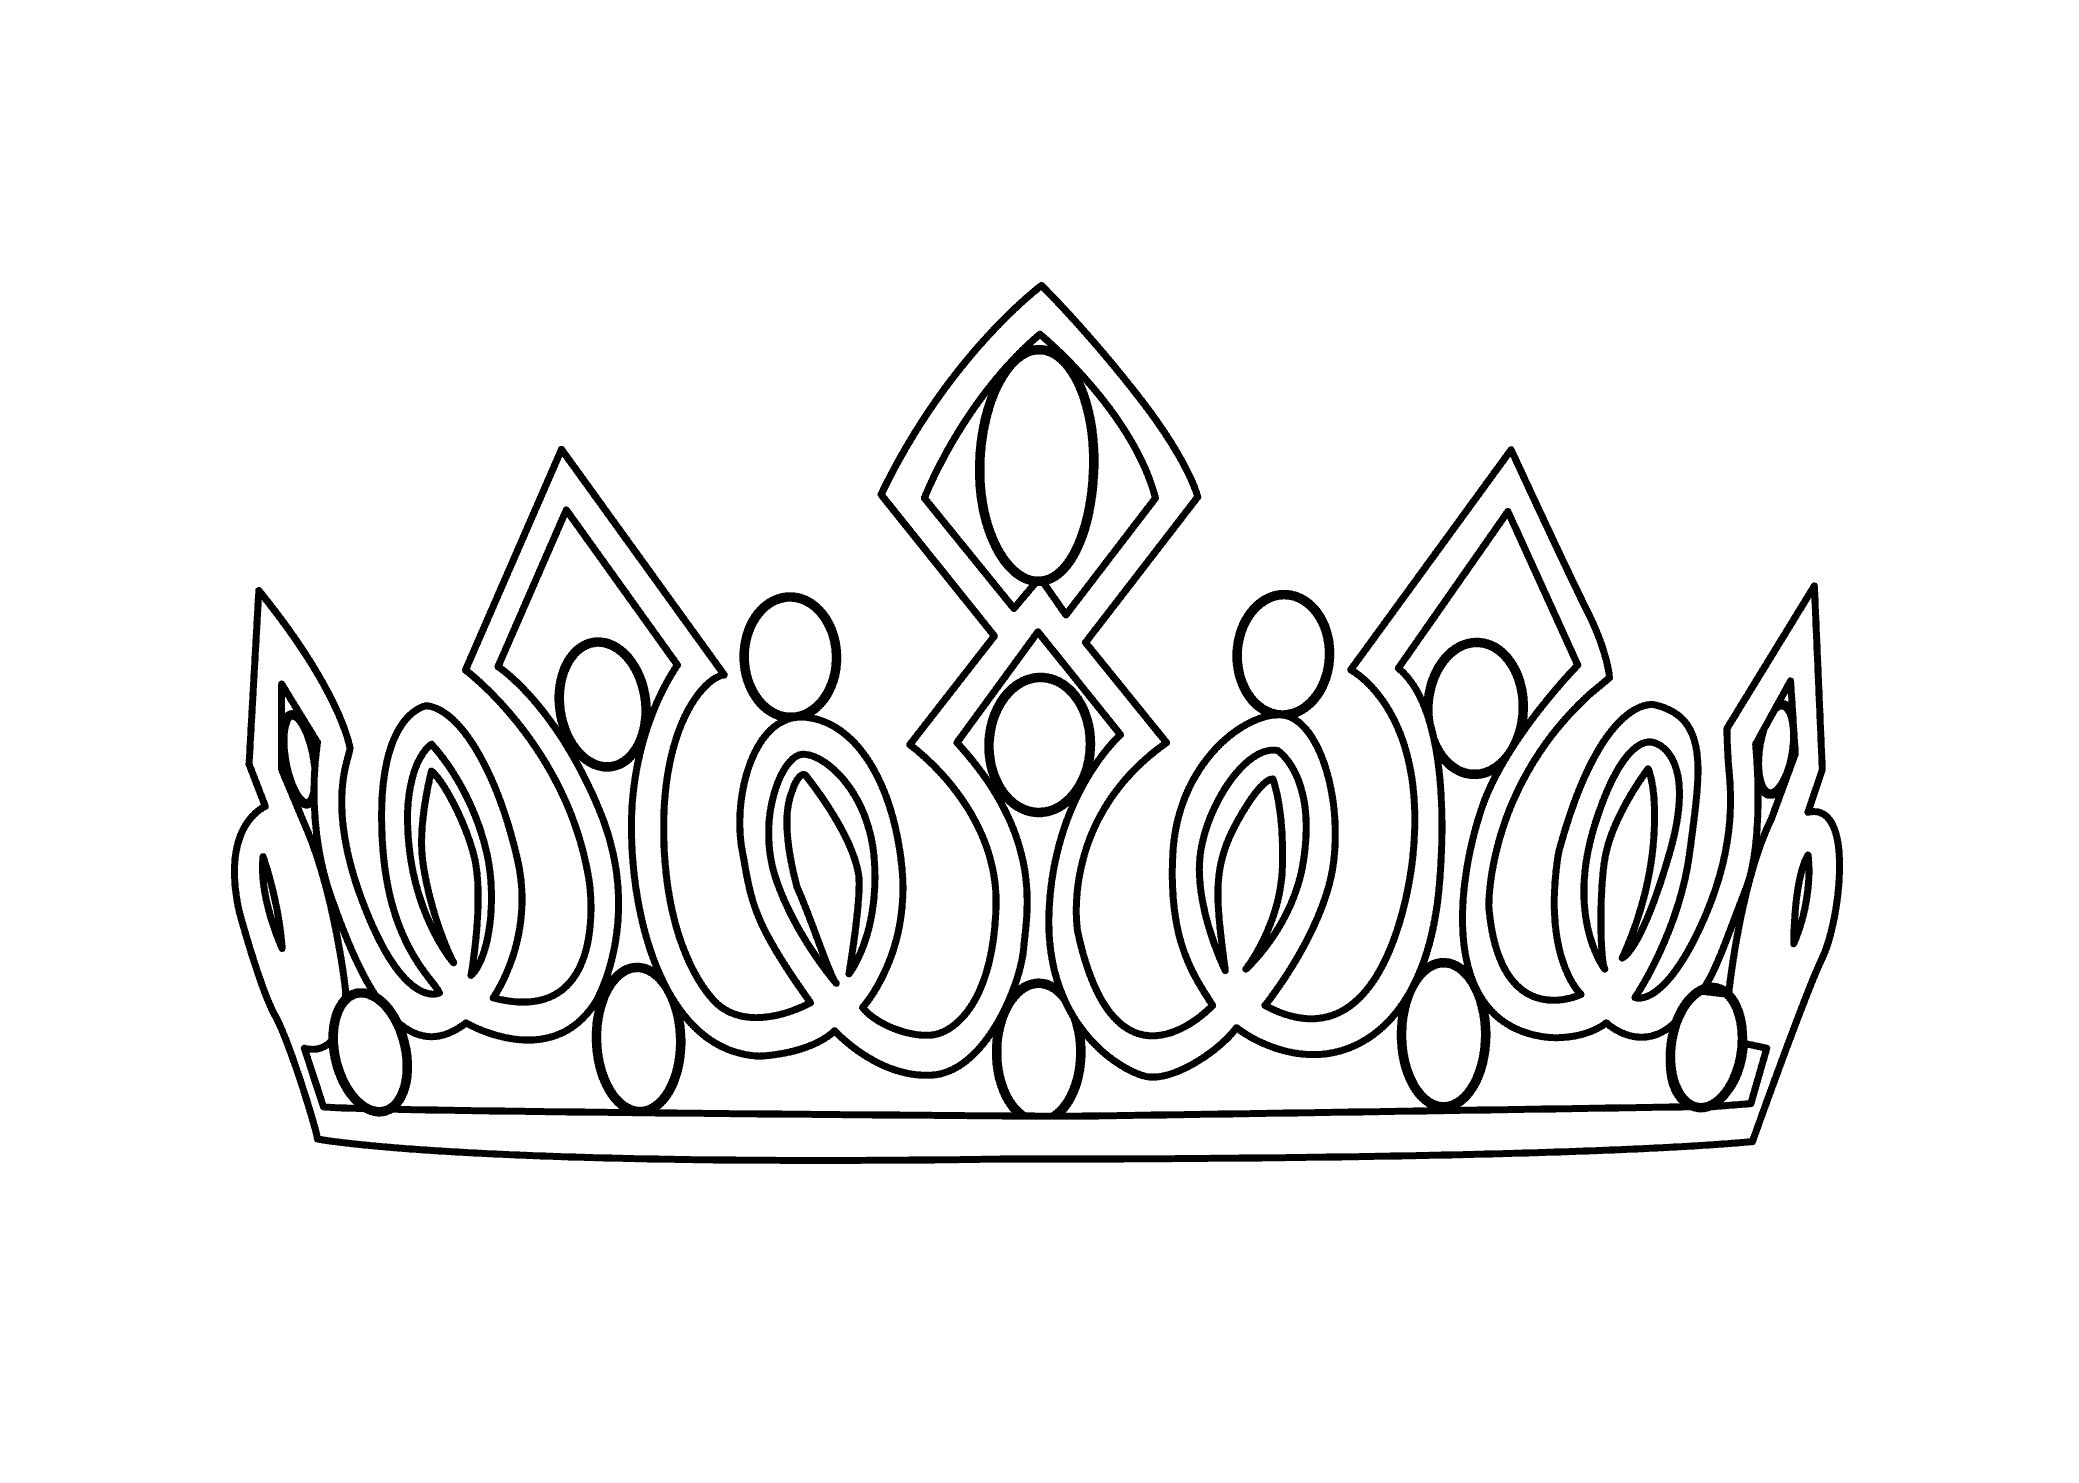 Coloring Page Princess Crown | Coloring Pages | Pinterest | Crown ...